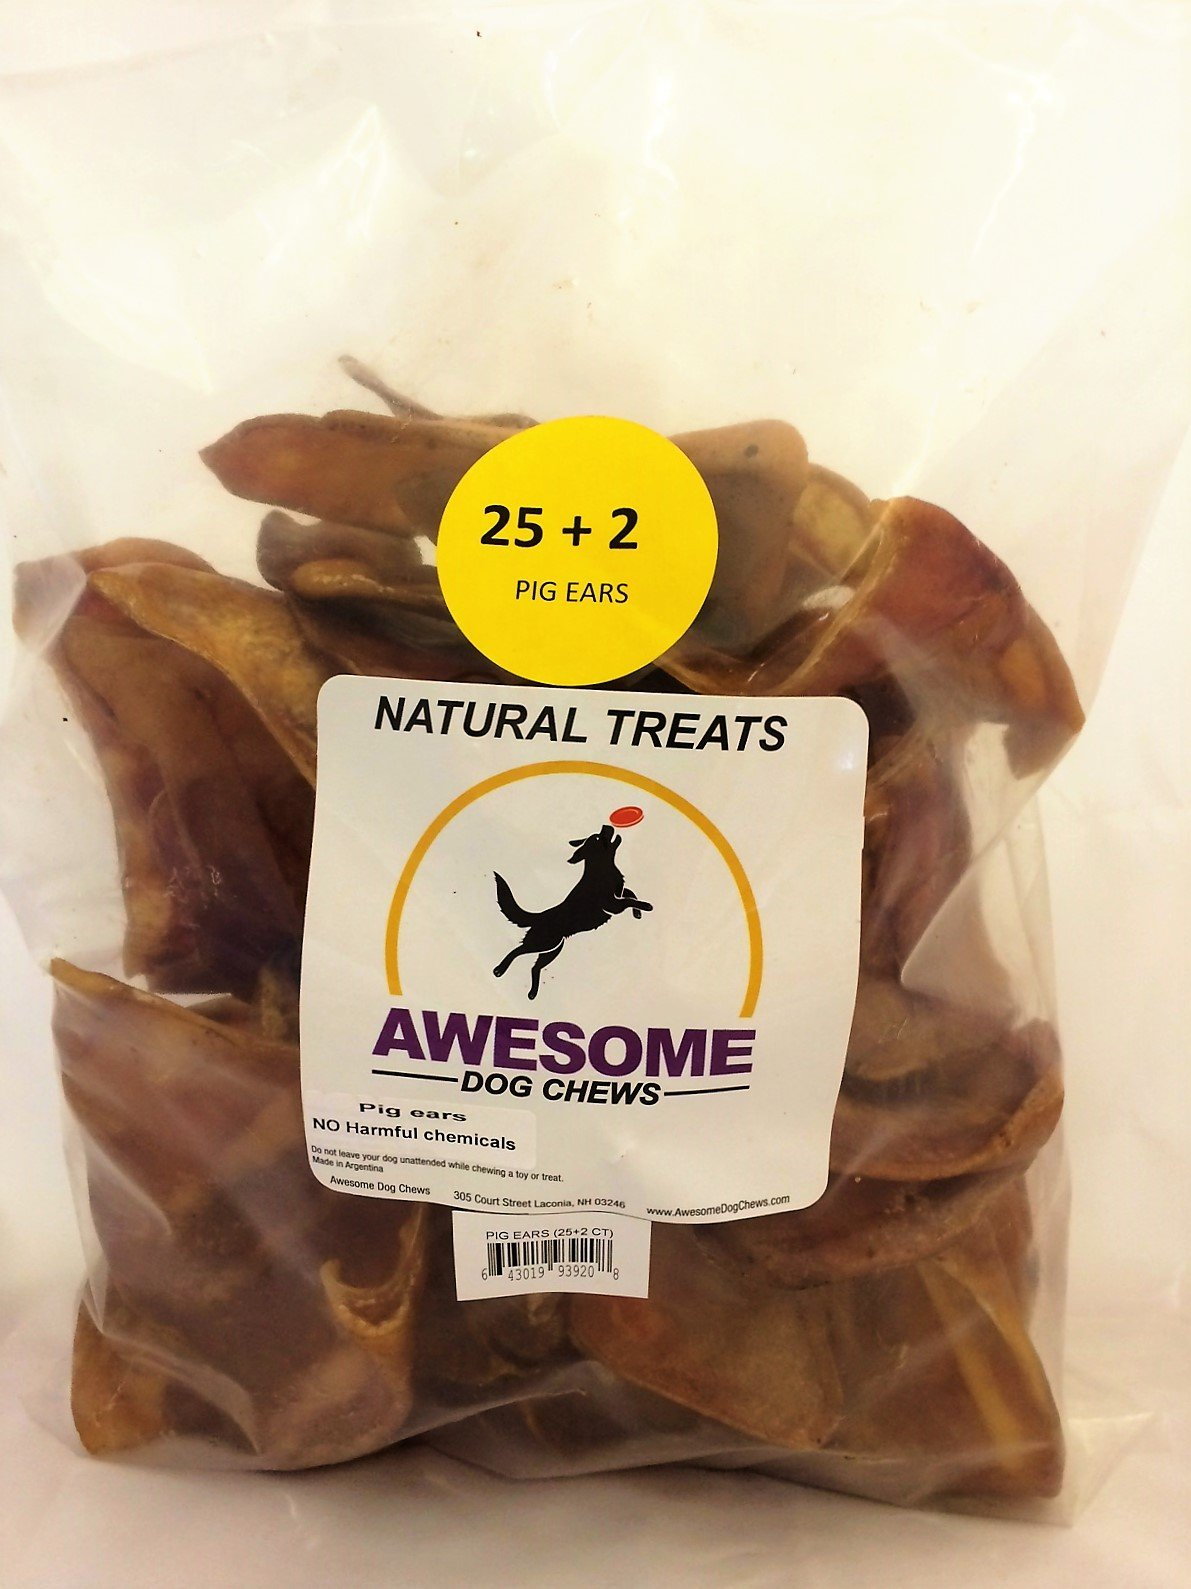 100% Awesome Dog Chews All Natural Pig Ears 25 + 2 FREE Count Value Bag - FDA / USDA Inspected Through a Registered FDA Plant